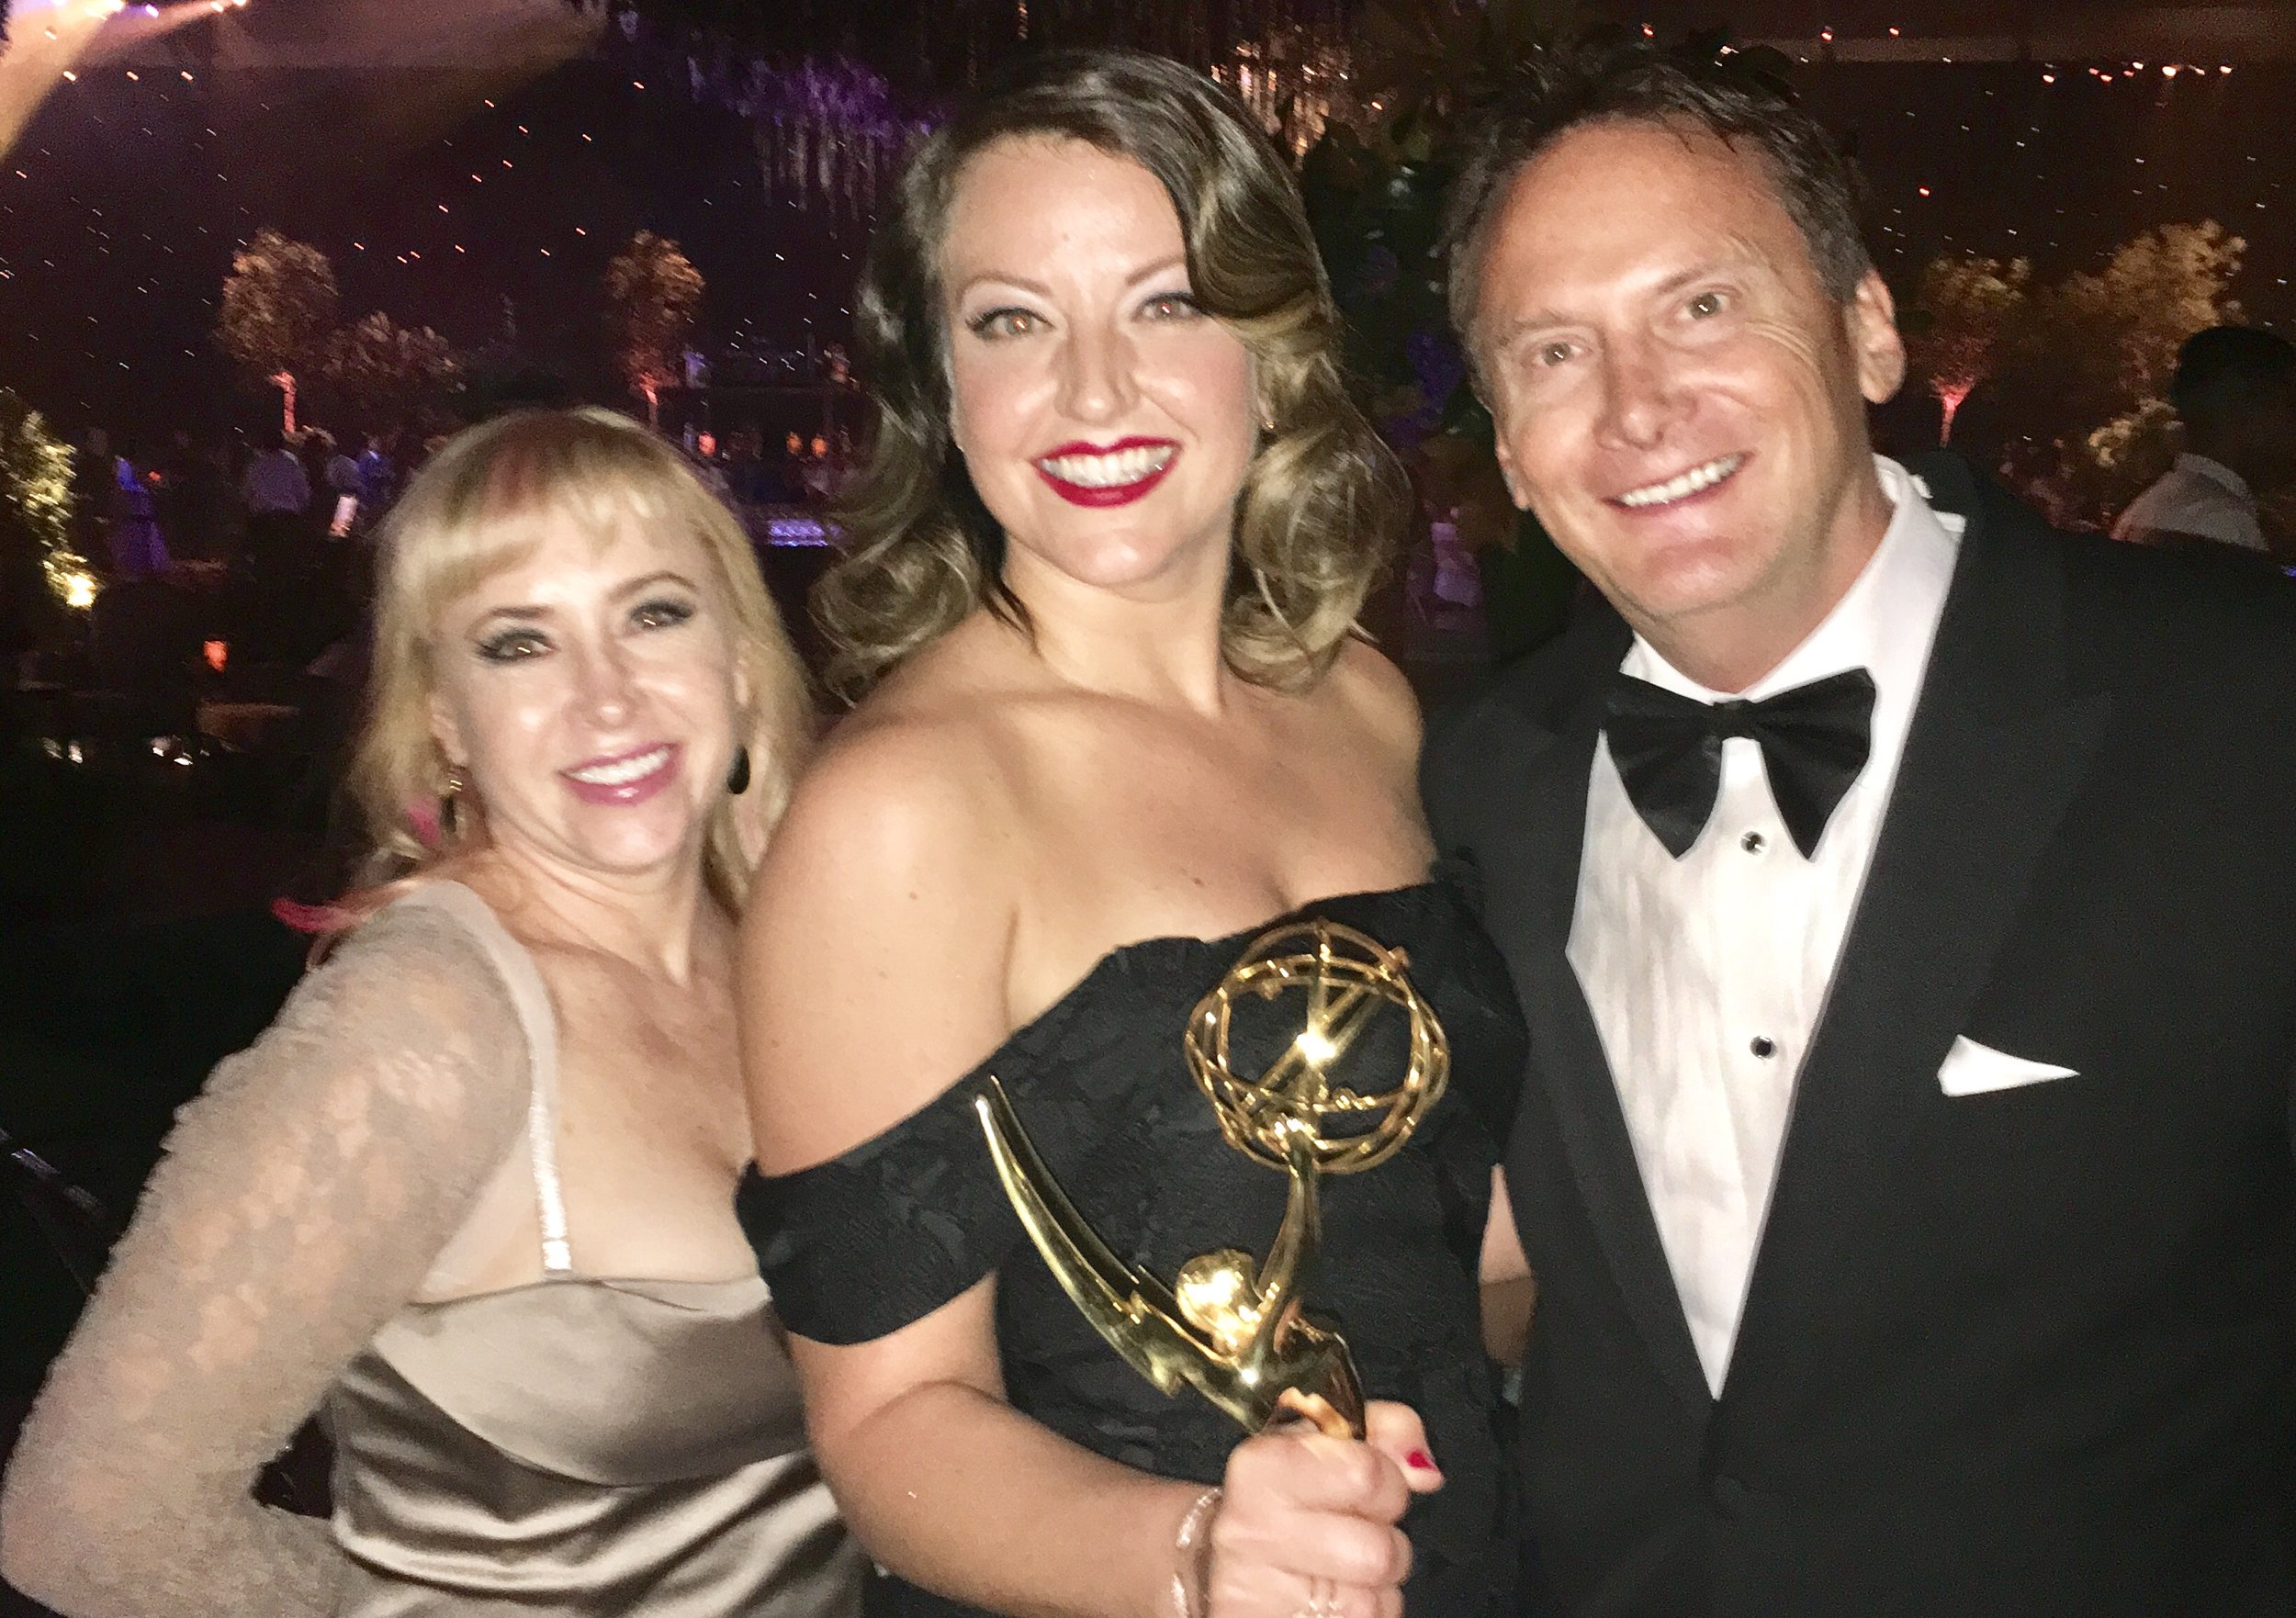 CELEBRATING KATHRYN BURNS' EMMY AWARD WITH ERIN EHRLICH